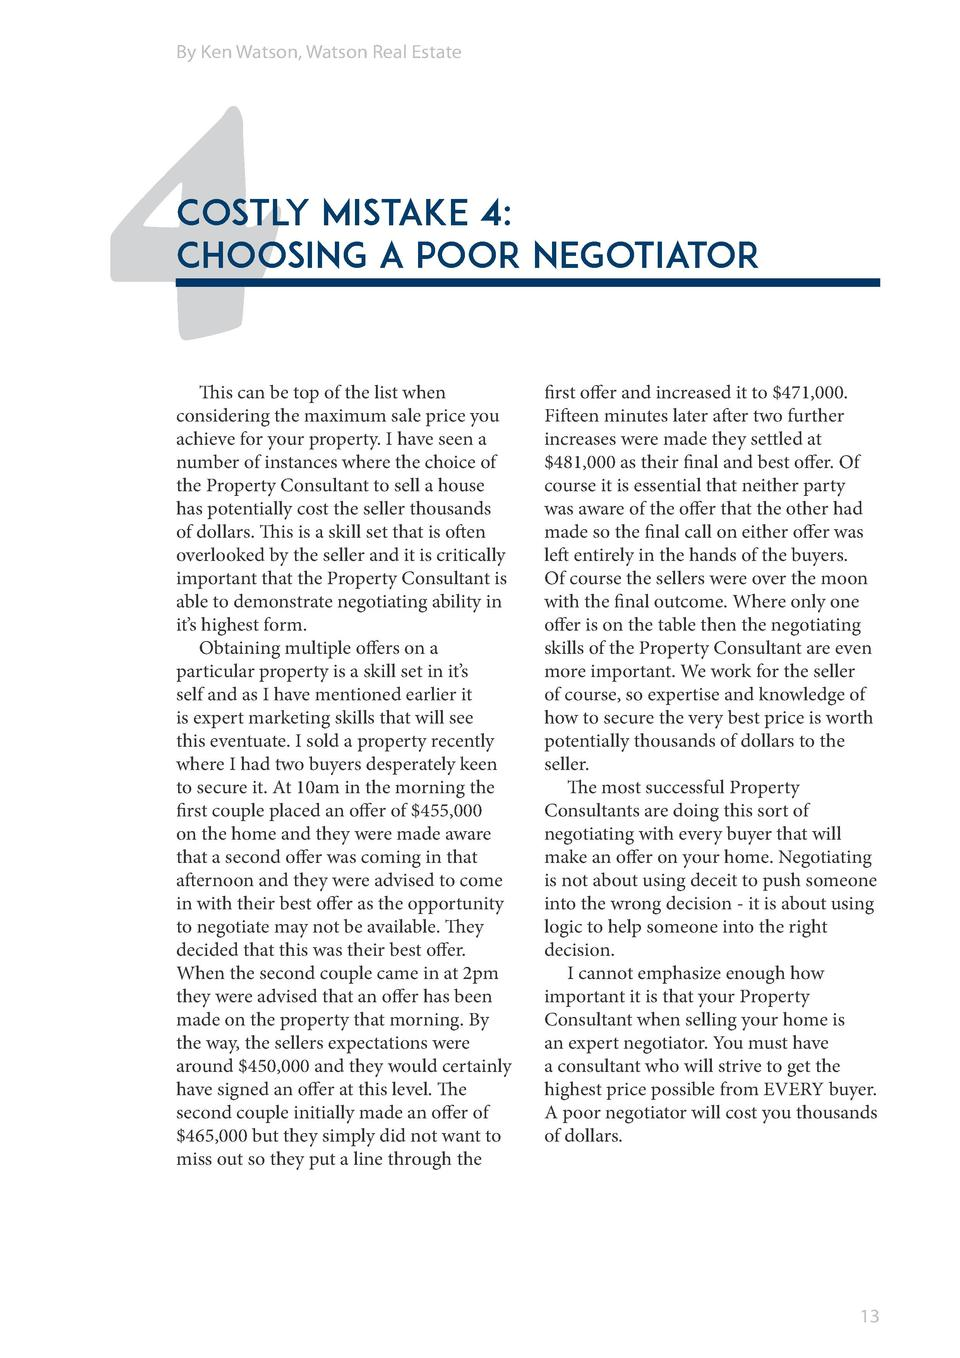 4  By Ken Watson, Watson Real Estate  Costly Mistake 4  Choosing a poor negotiator  This can be top of the list when consi...